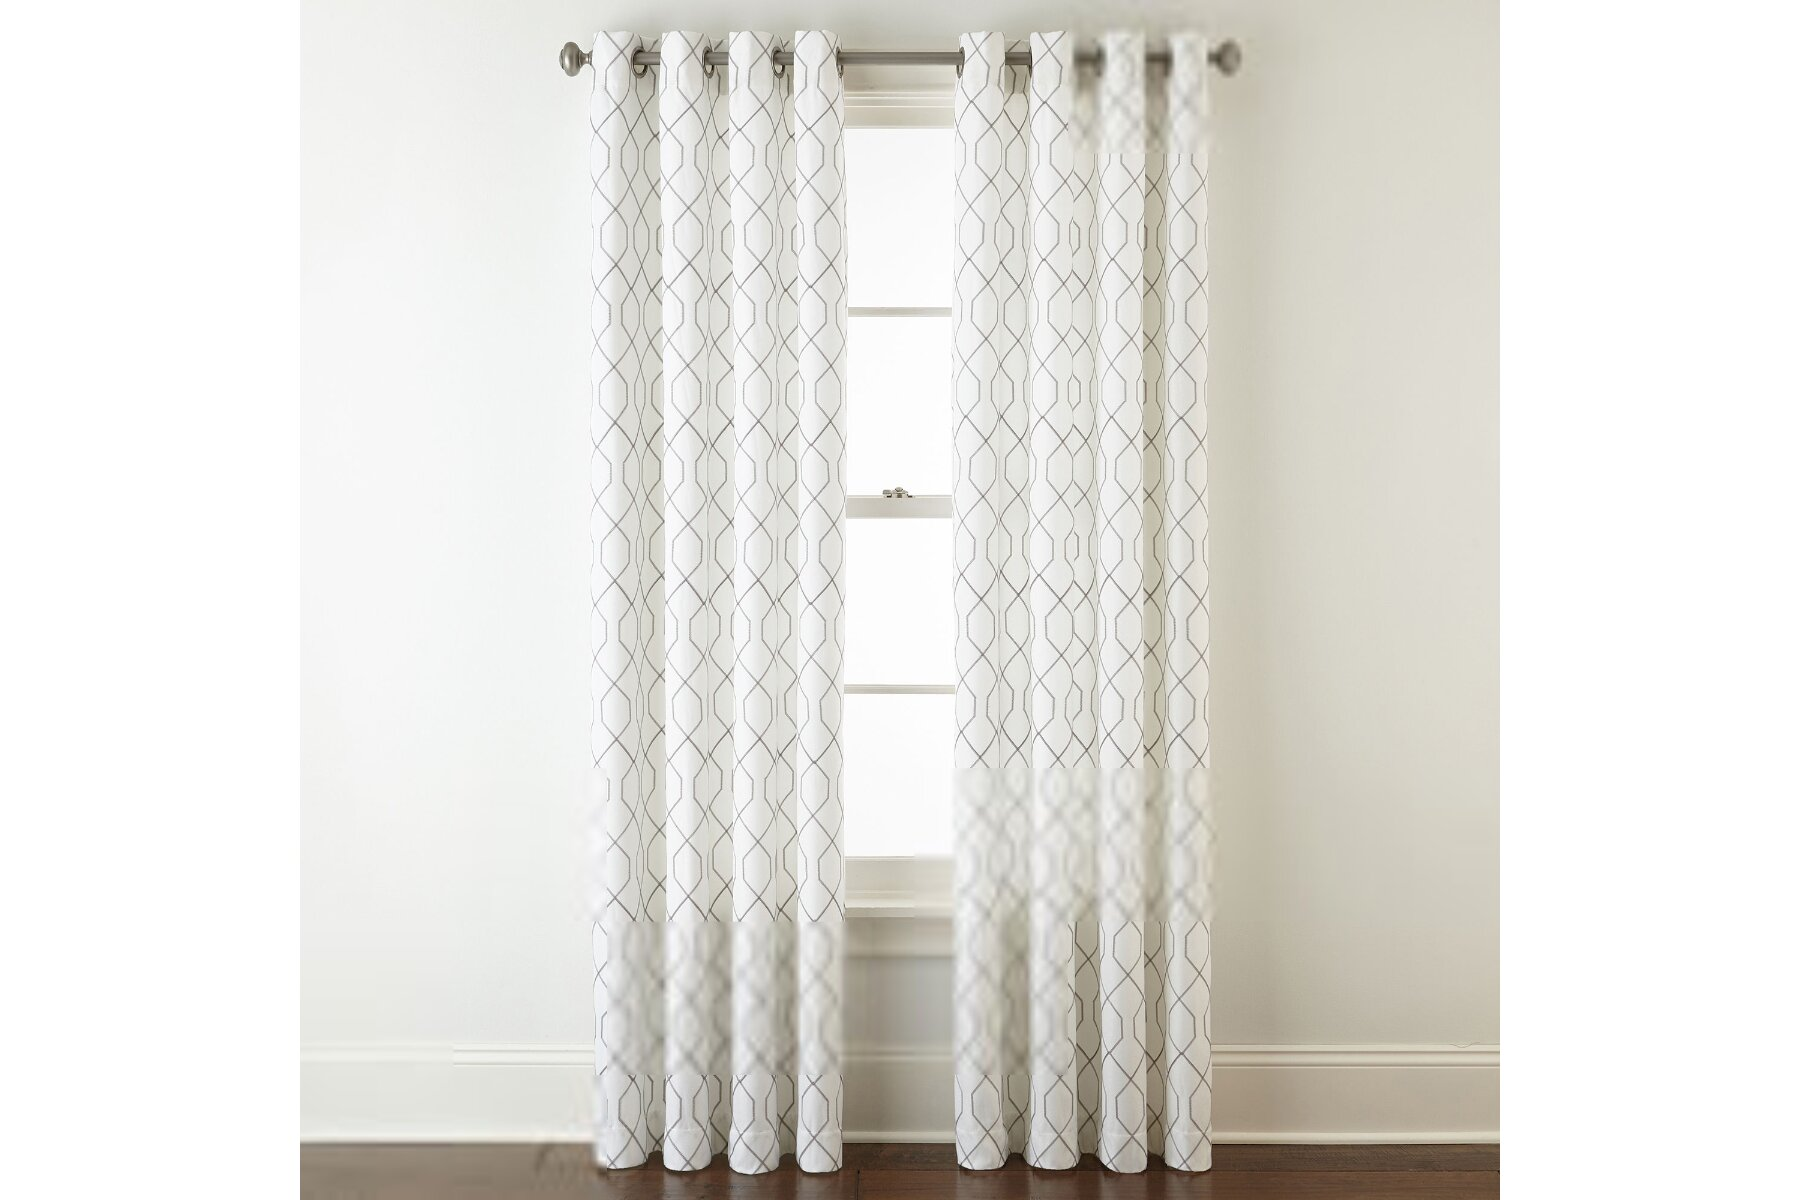 jcpenney home pasadena embroidery room darkening grommet top curtain panel dimensions 63 inches length x 50 inches width cool white